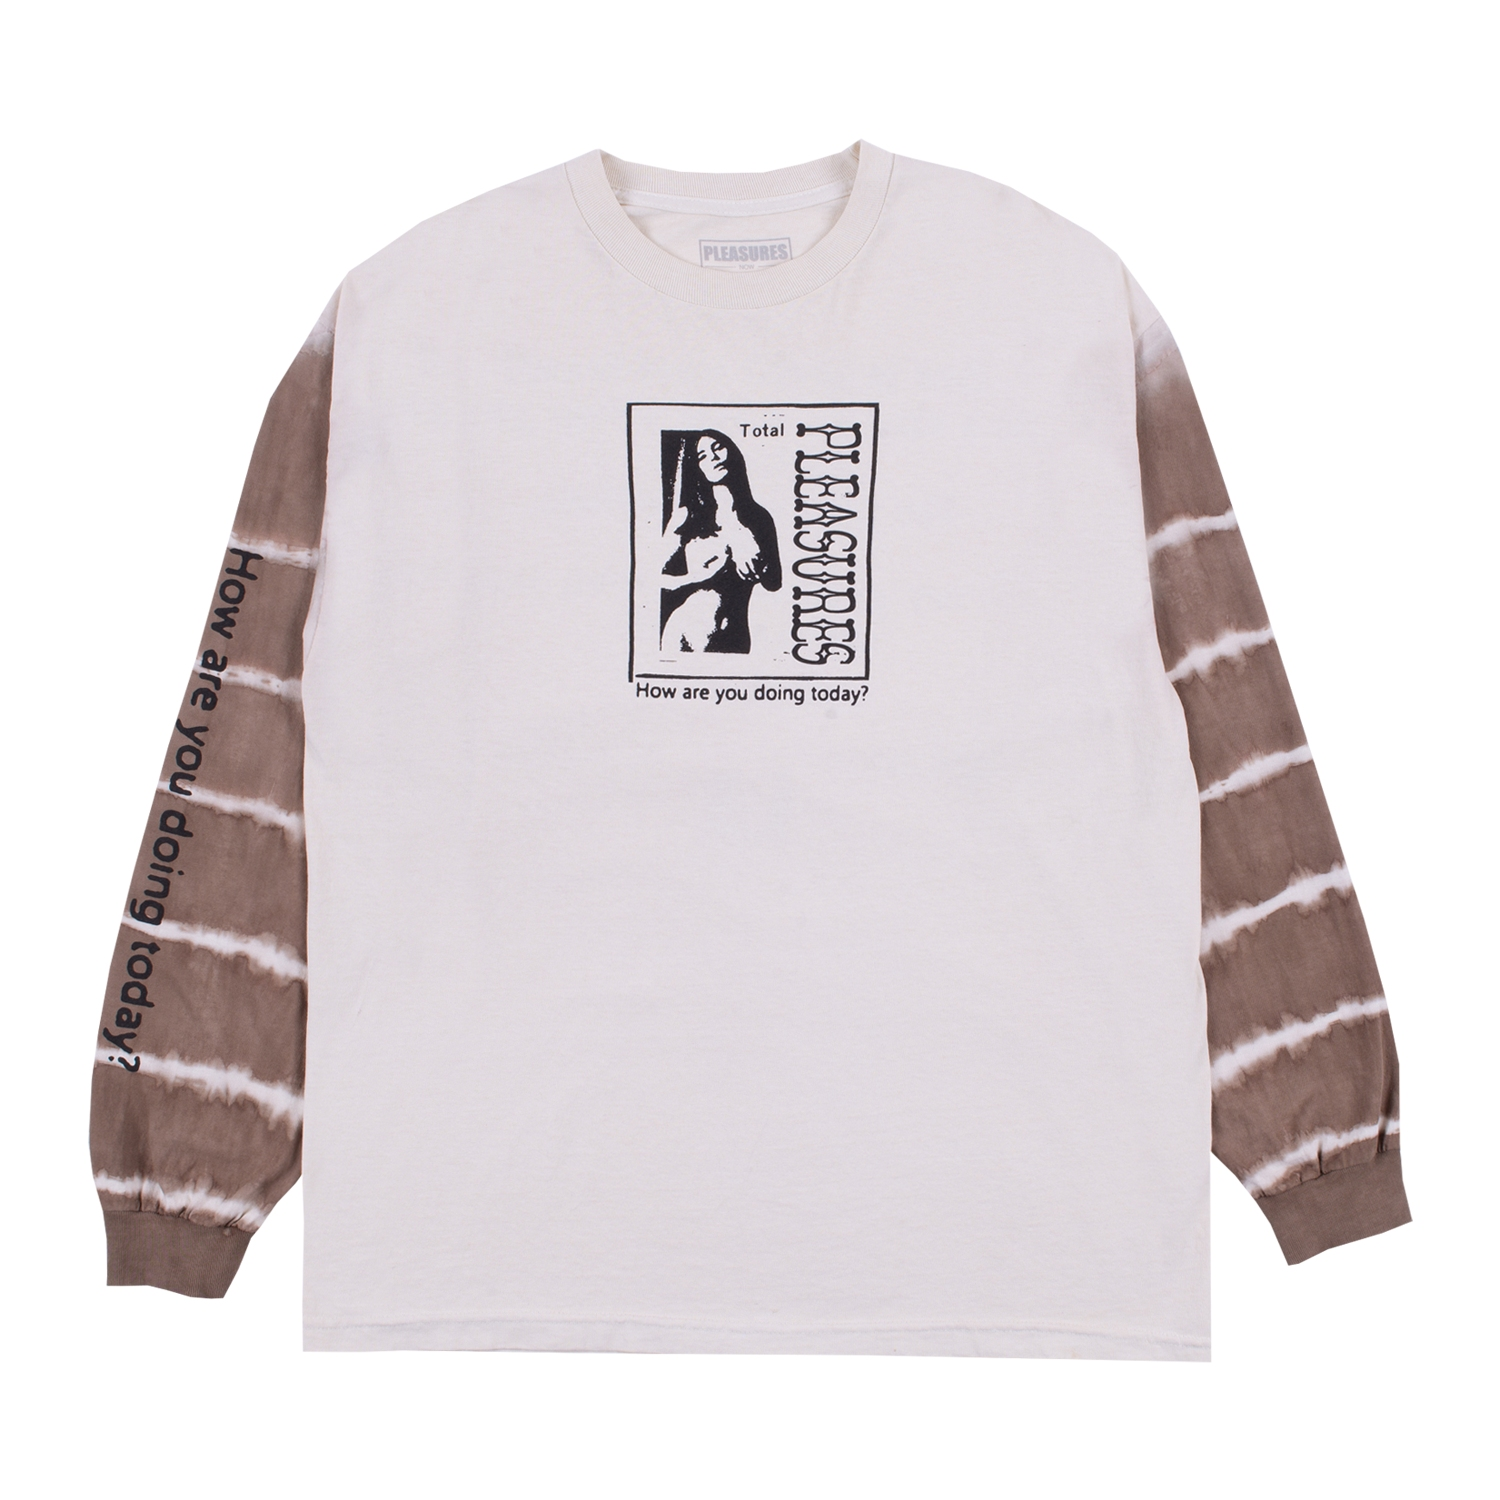 【PLEASURES/プレジャーズ】COVER GIRL LONG SLEEVE T-SHIRT ロングTシャツ / TAN/BROWN